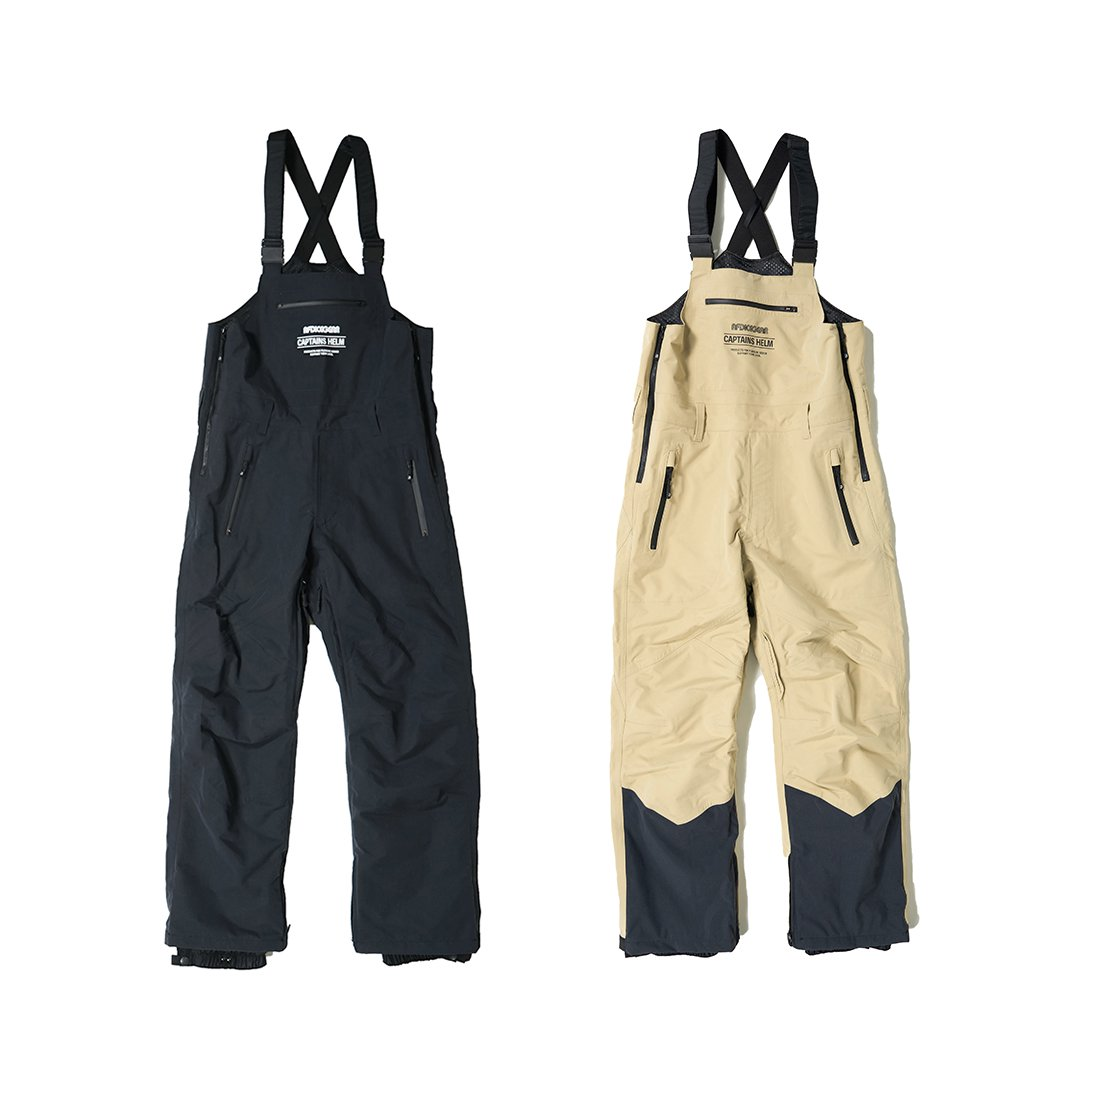 AFDICEGEAR × CAPTAINS HELM #ALL CONDITION SHELTER PANTS